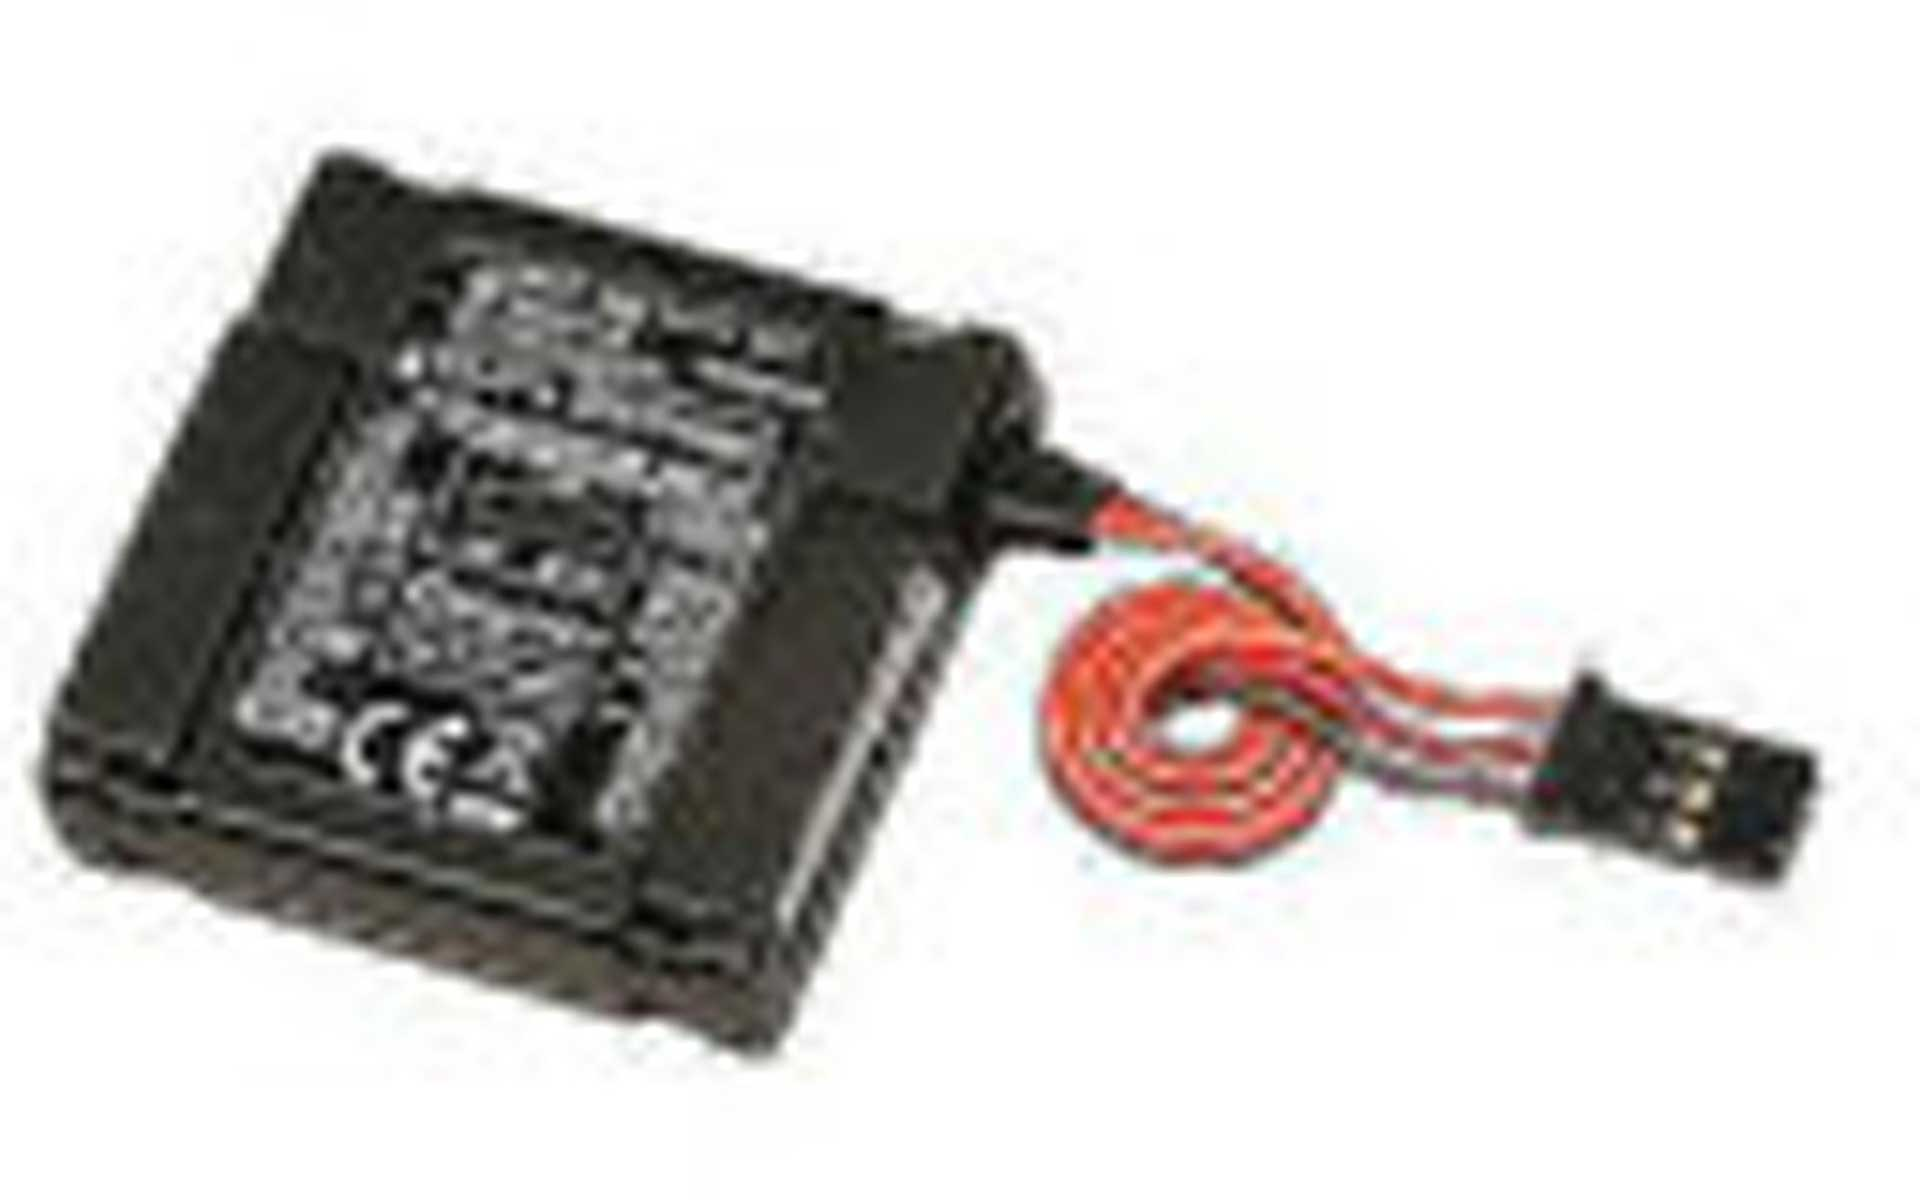 GRAUPNER LIPO DEEP DISCHARGE PROT. FOR 2-14 CELLS